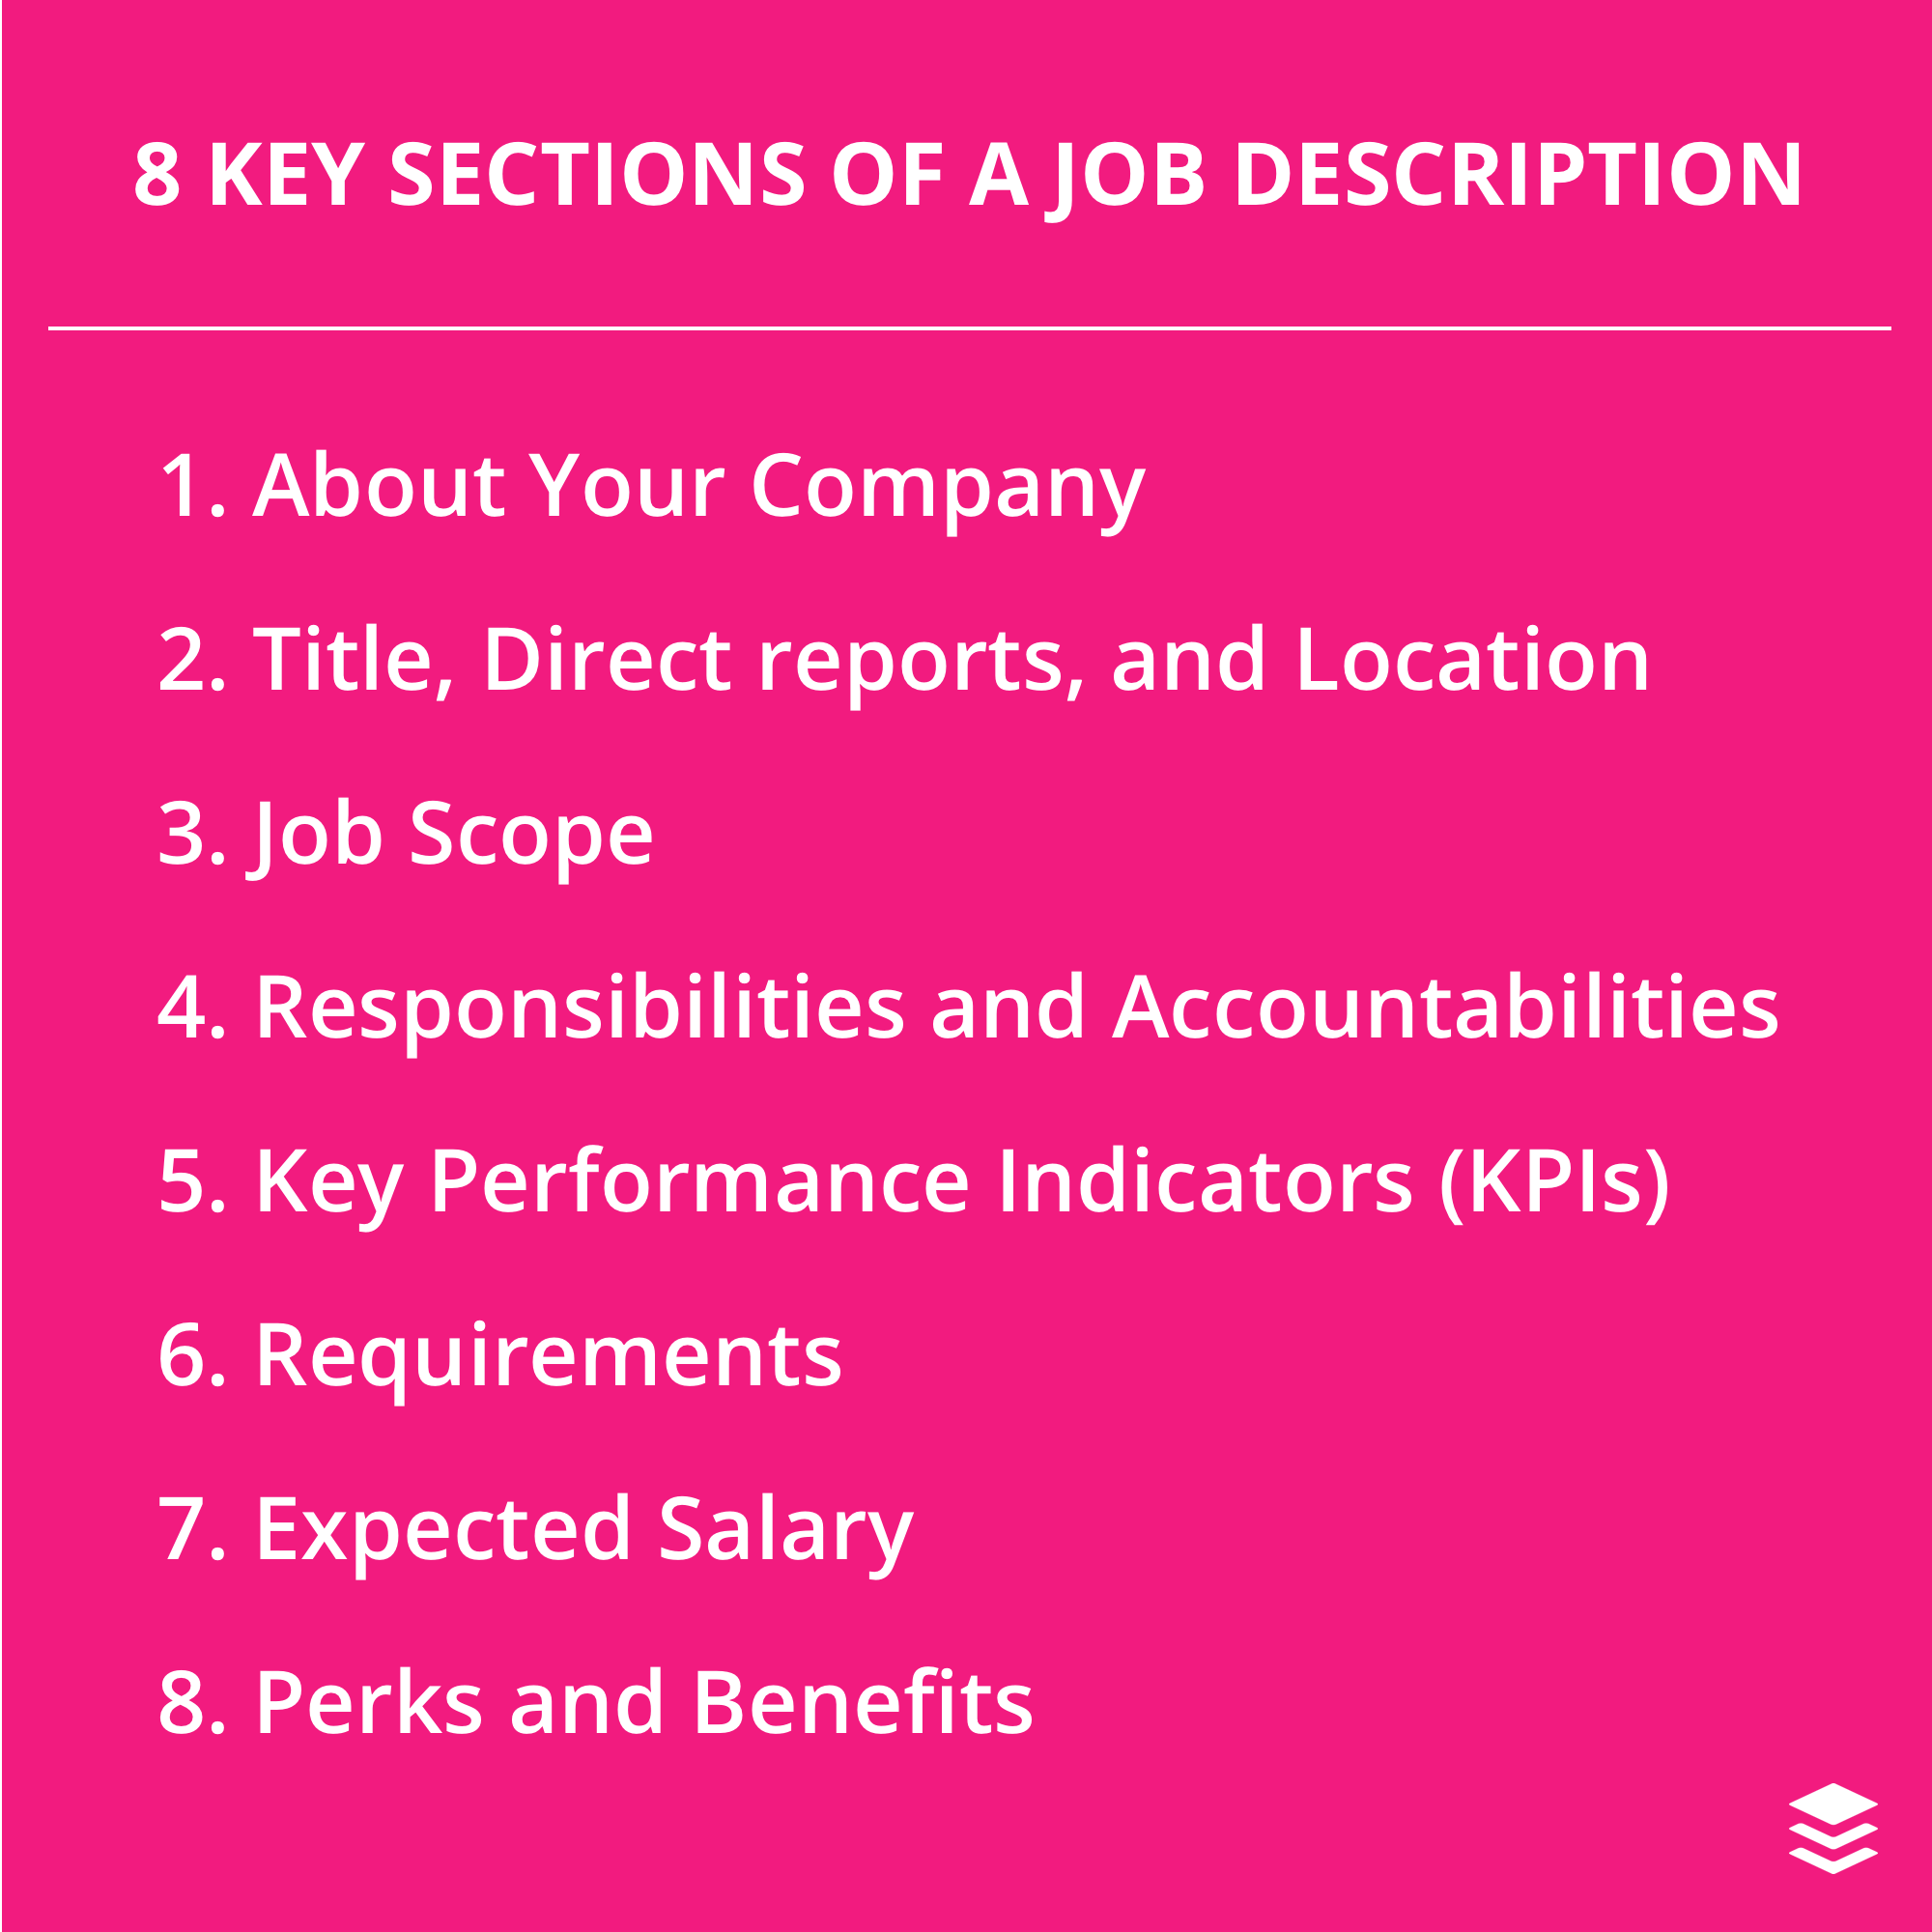 8 Key Sections of a Job Description